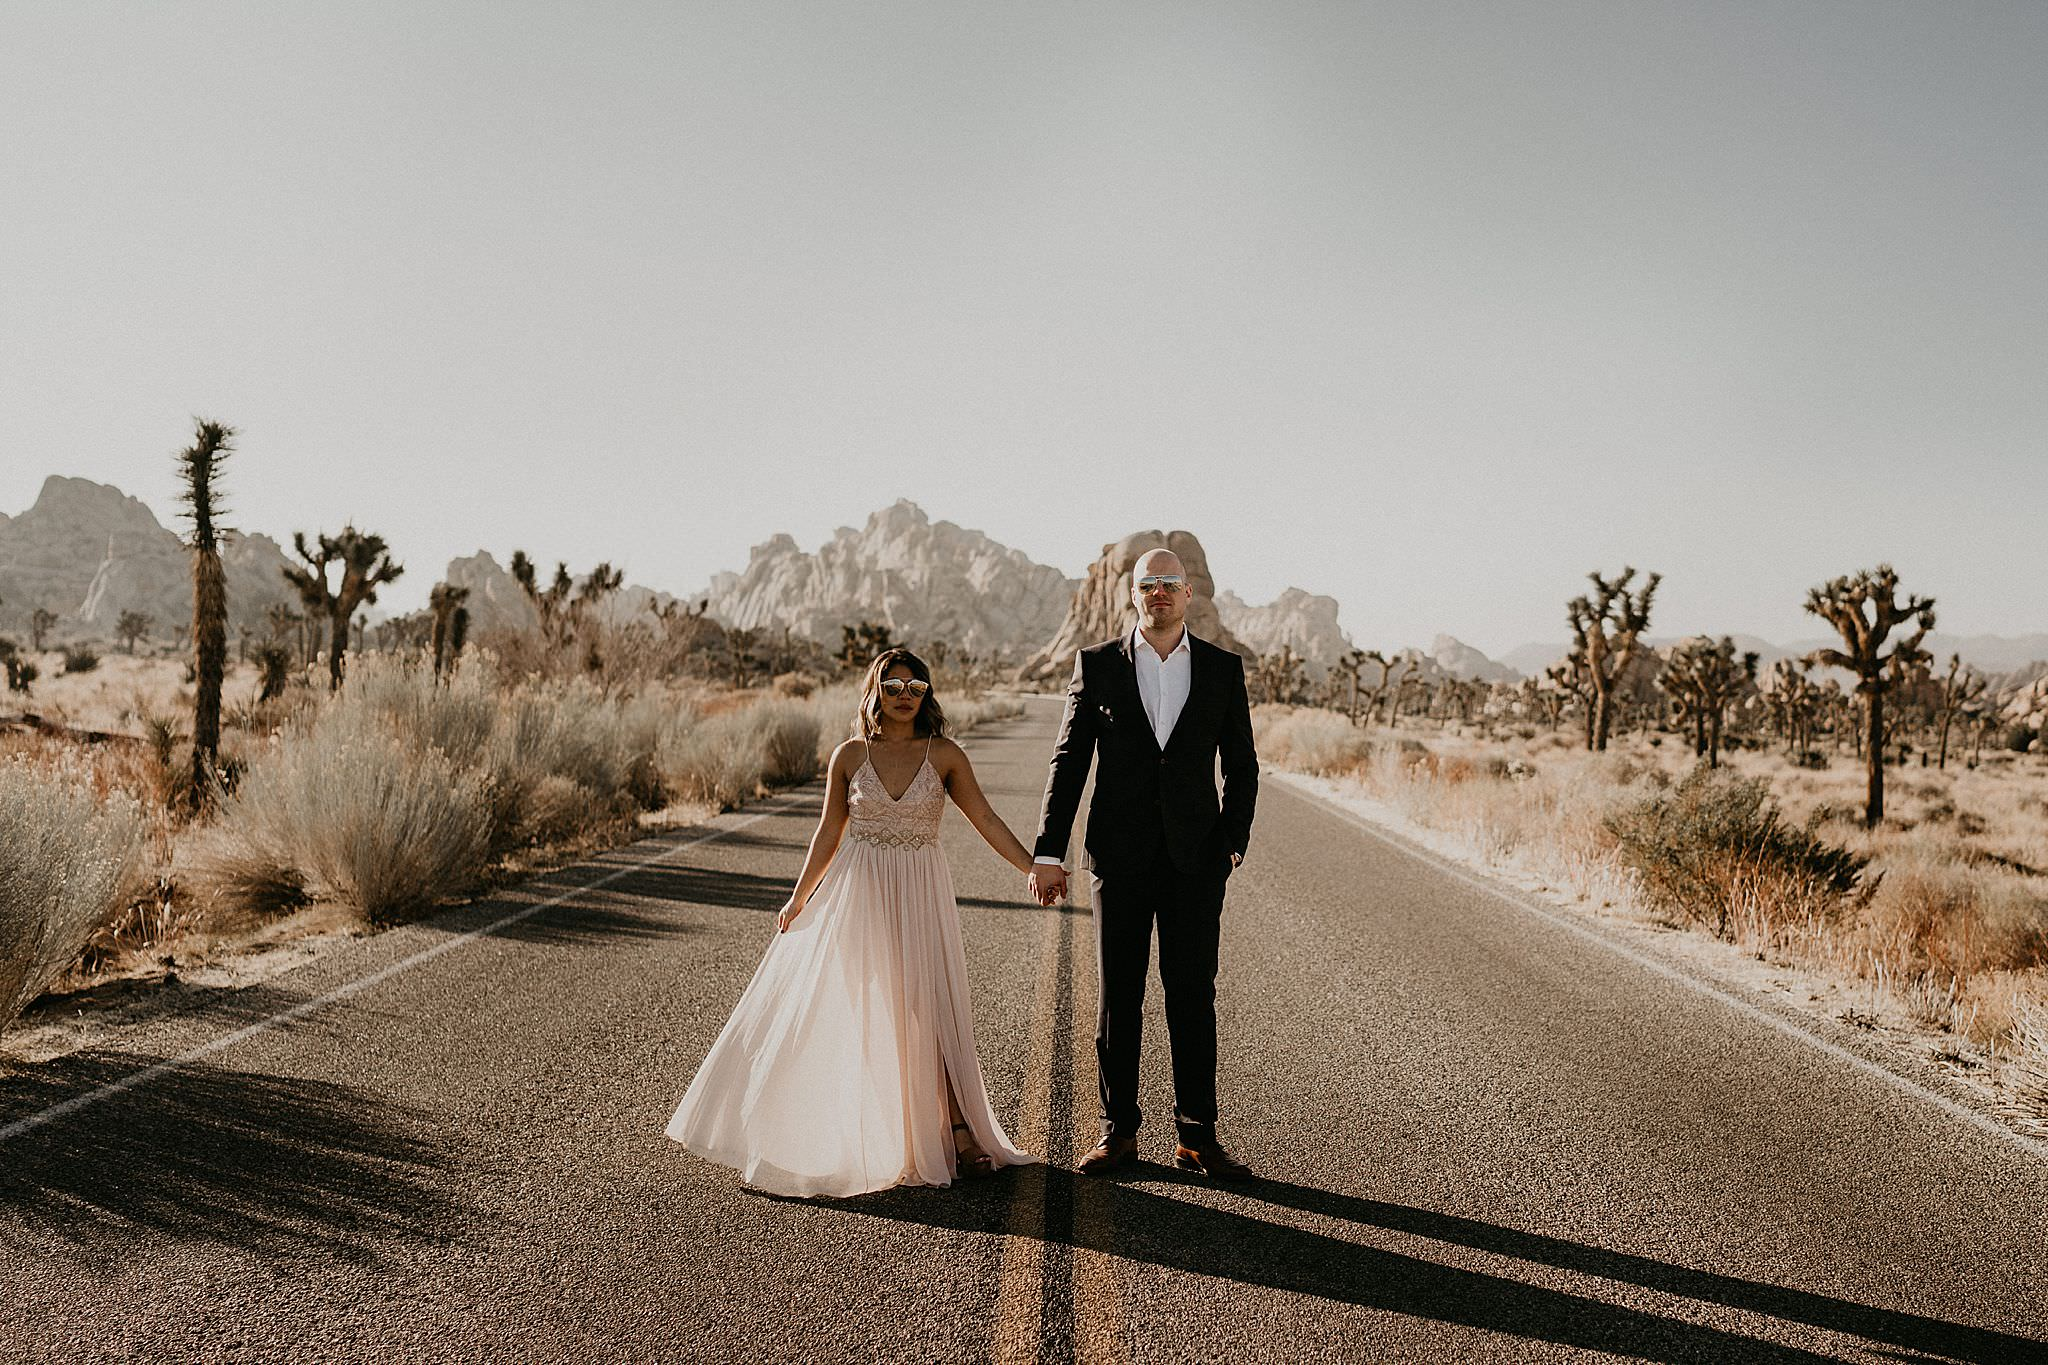 Ideas for best dress for Joshua Tree engagement photos